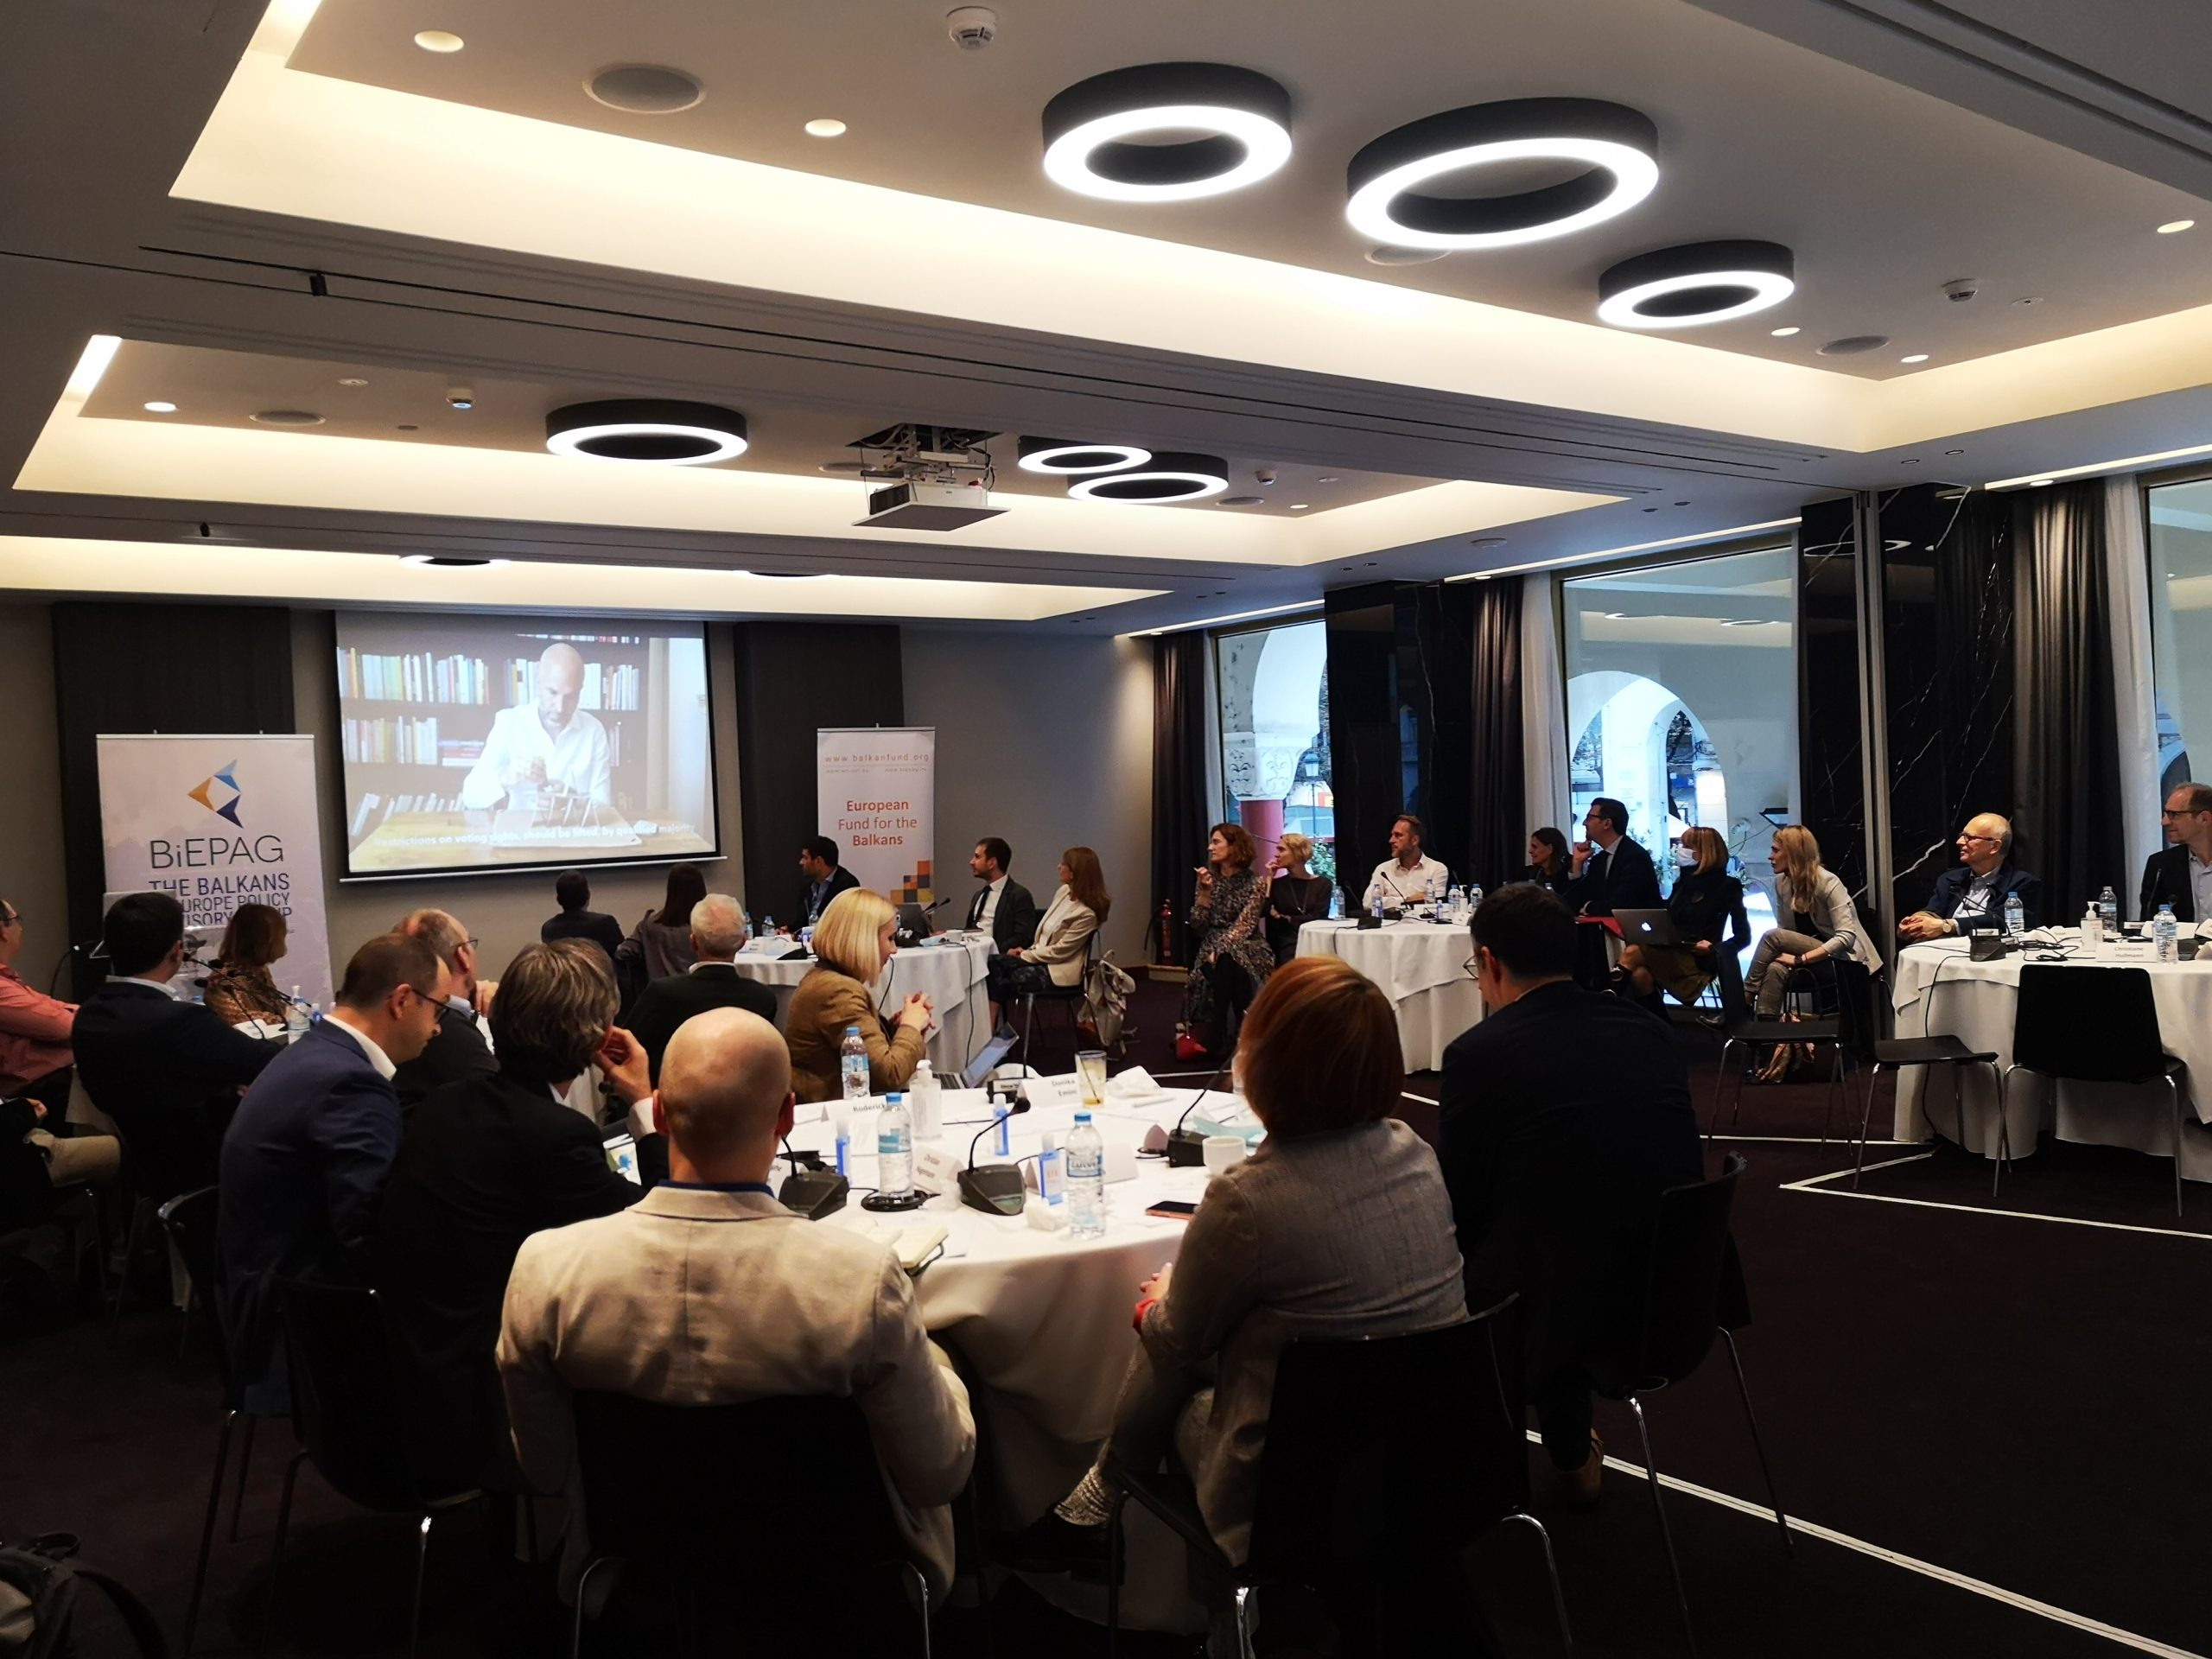 Key takeaways from the Thessaloniki gathering of EFB, BiEPAG and guests